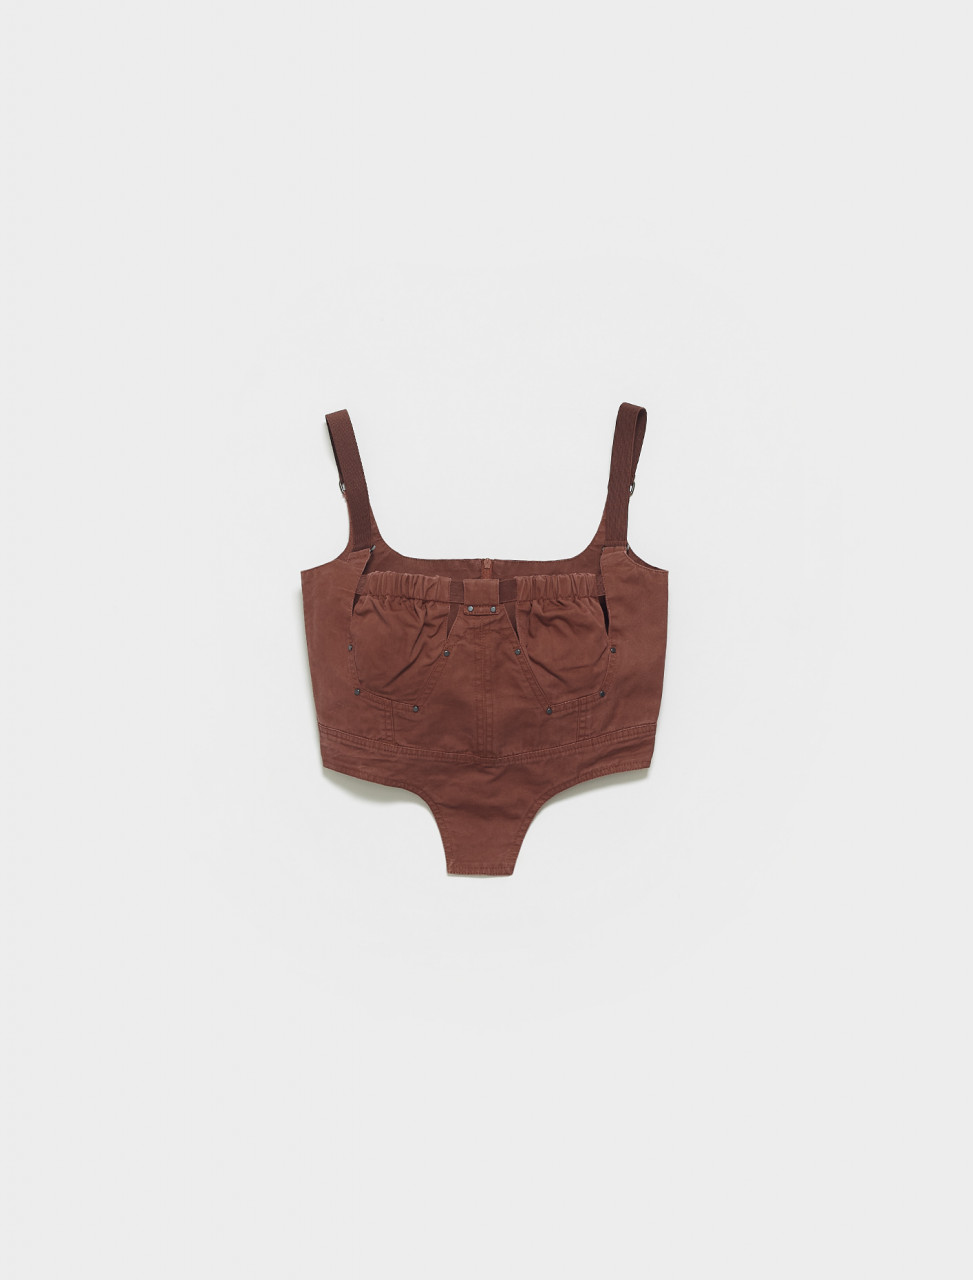 SS21-ANT0PW-PW CHARLOTTE KNOWLES BUSTIER W RIVETED SQUARE CUPS & ELASTIC STRAPS IN PURPLE WASH